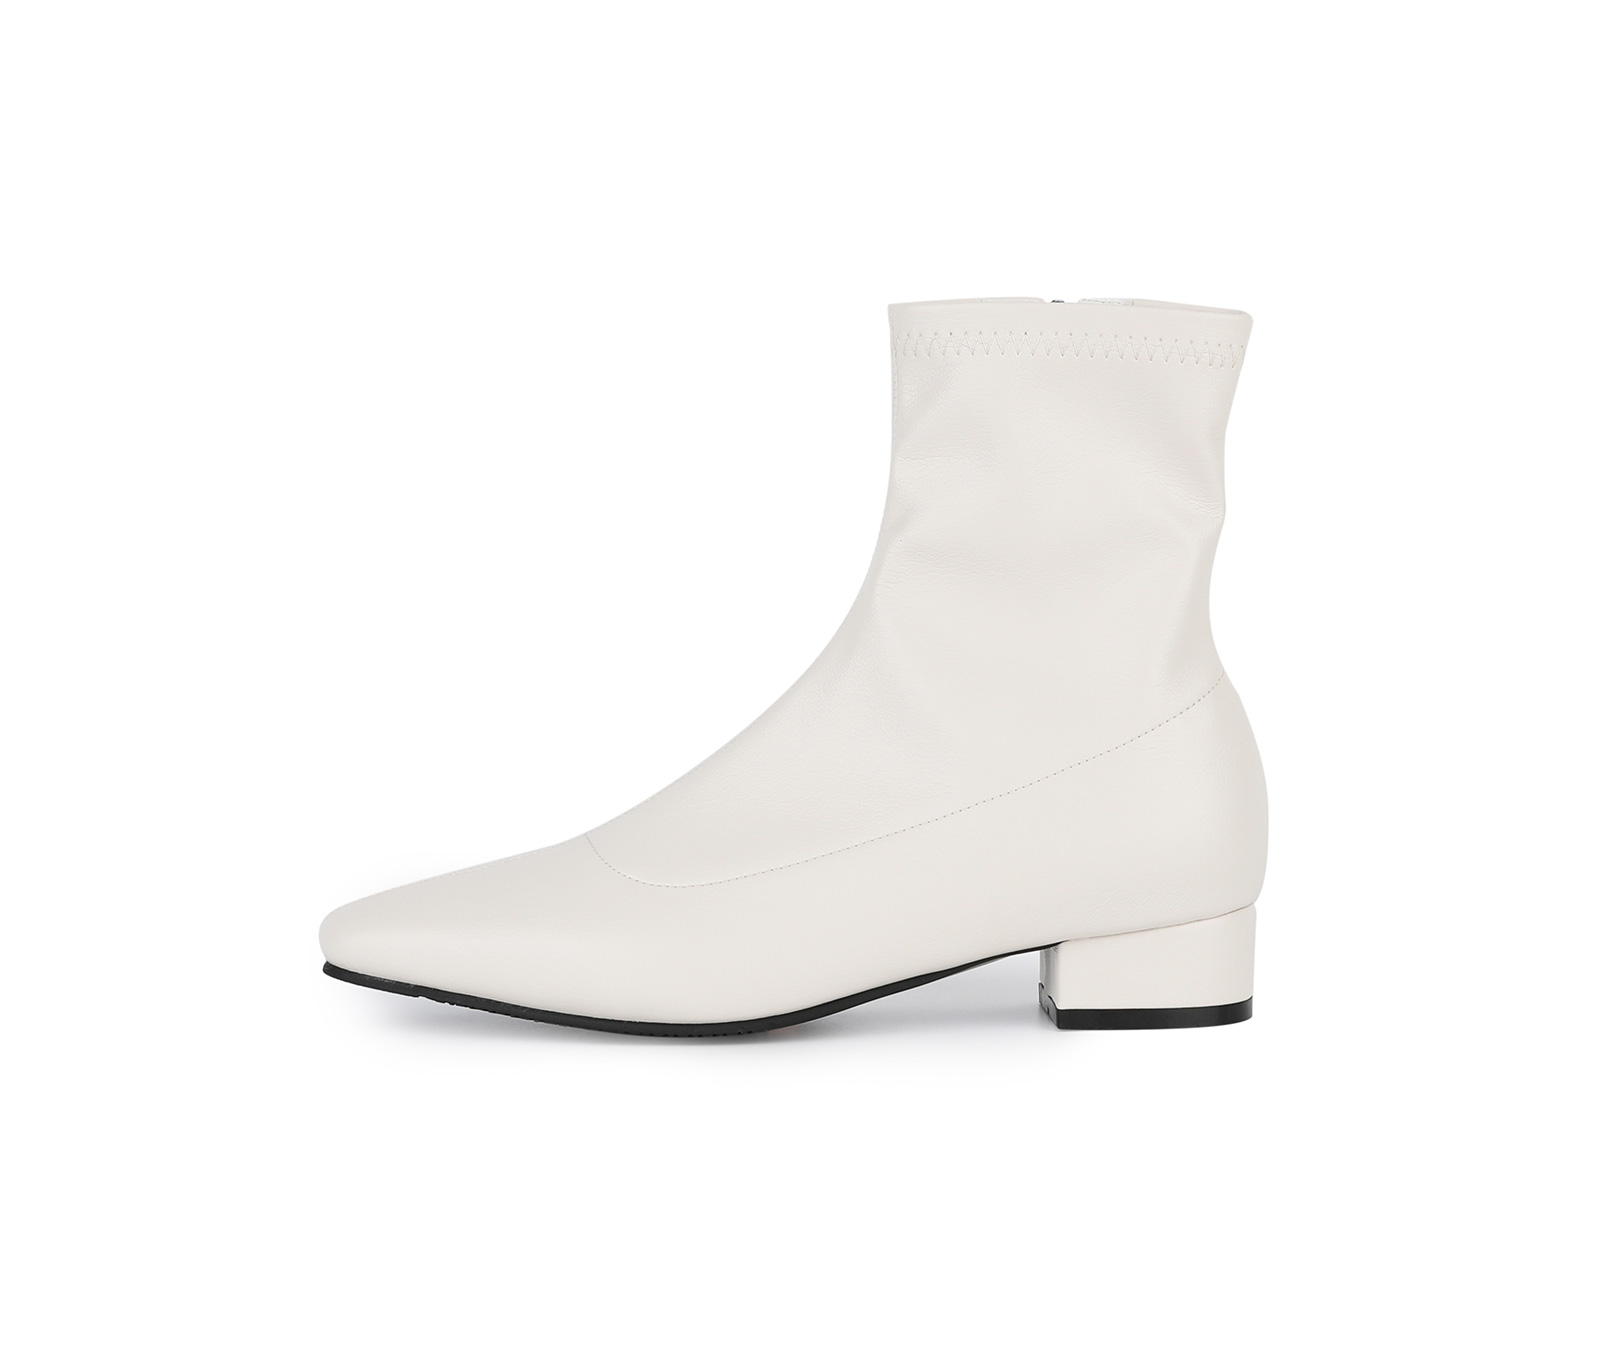 Bob ankle boots